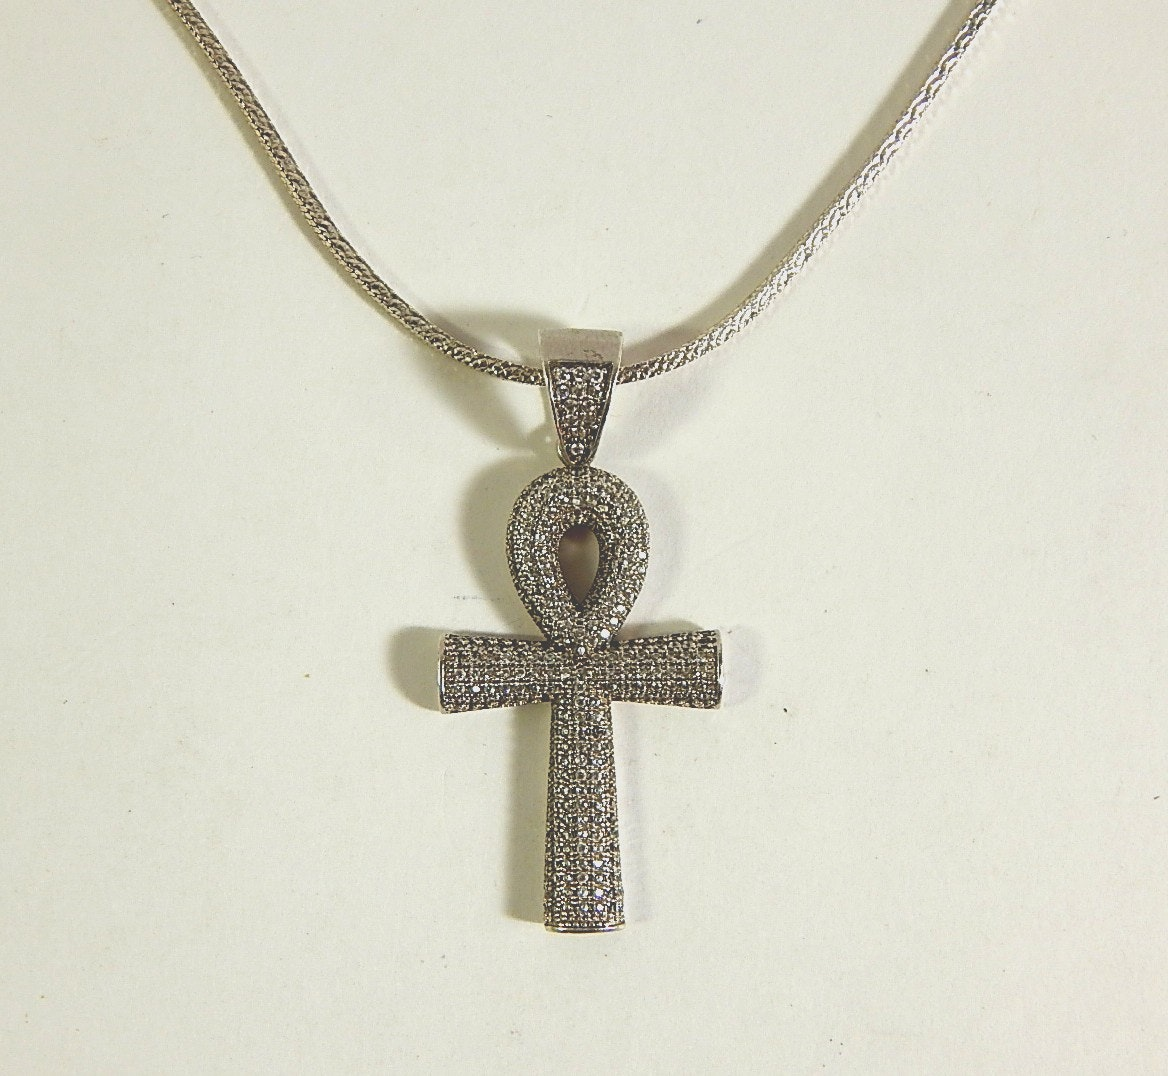 Sterling Silver Ankh Cross Pendant with Rhinestones and Chain Necklace